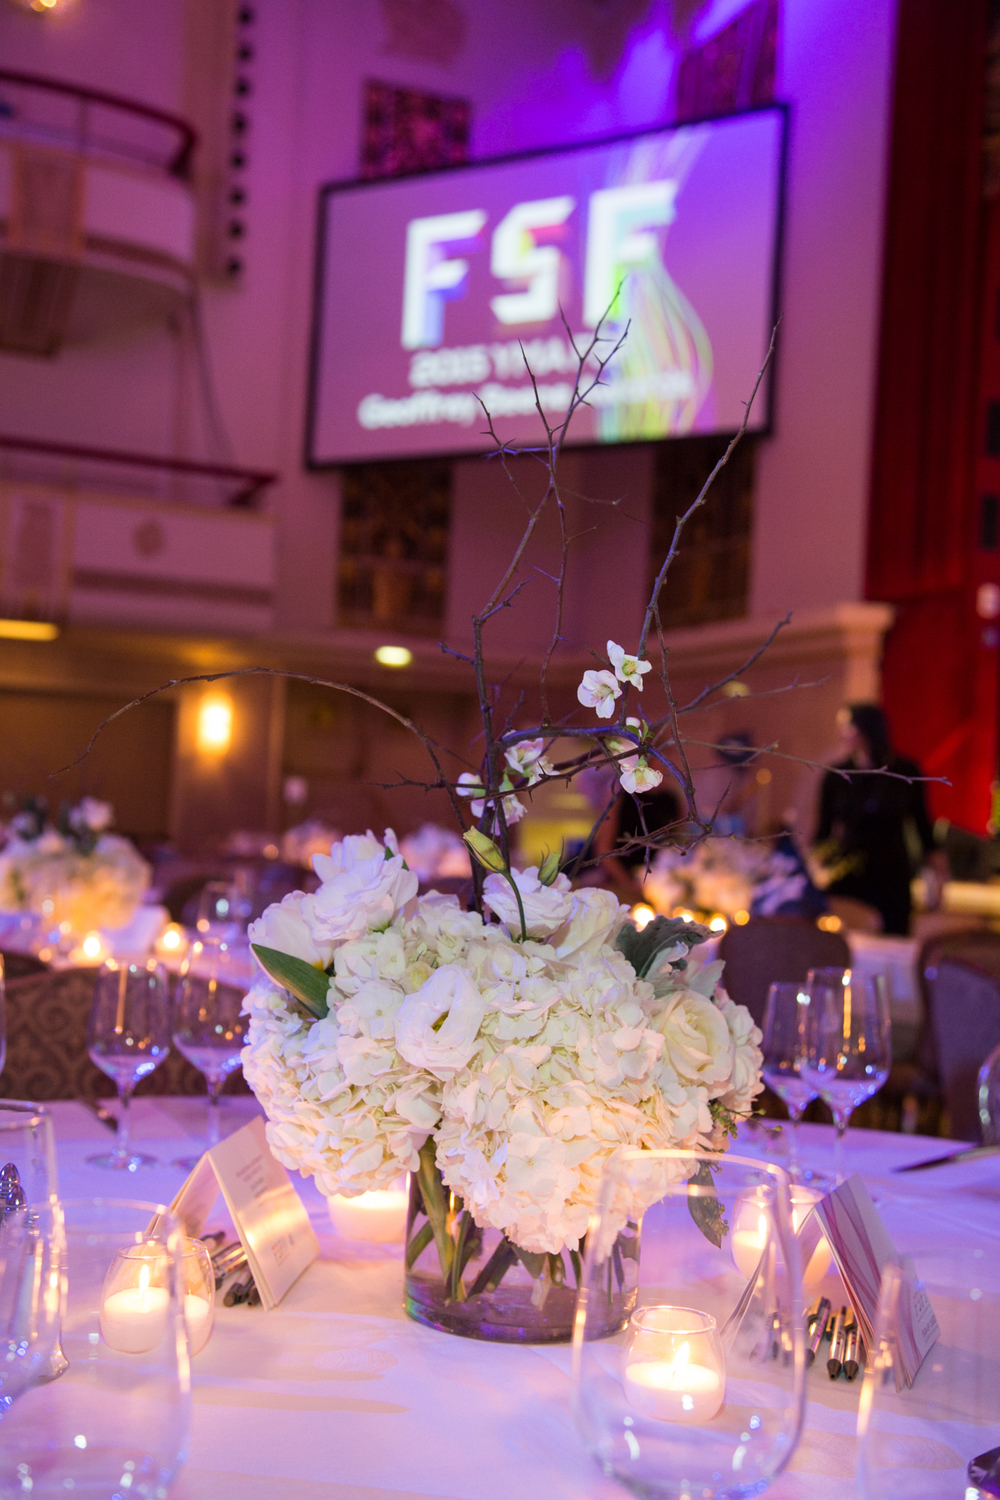 A view of the YMA FSF Gala.